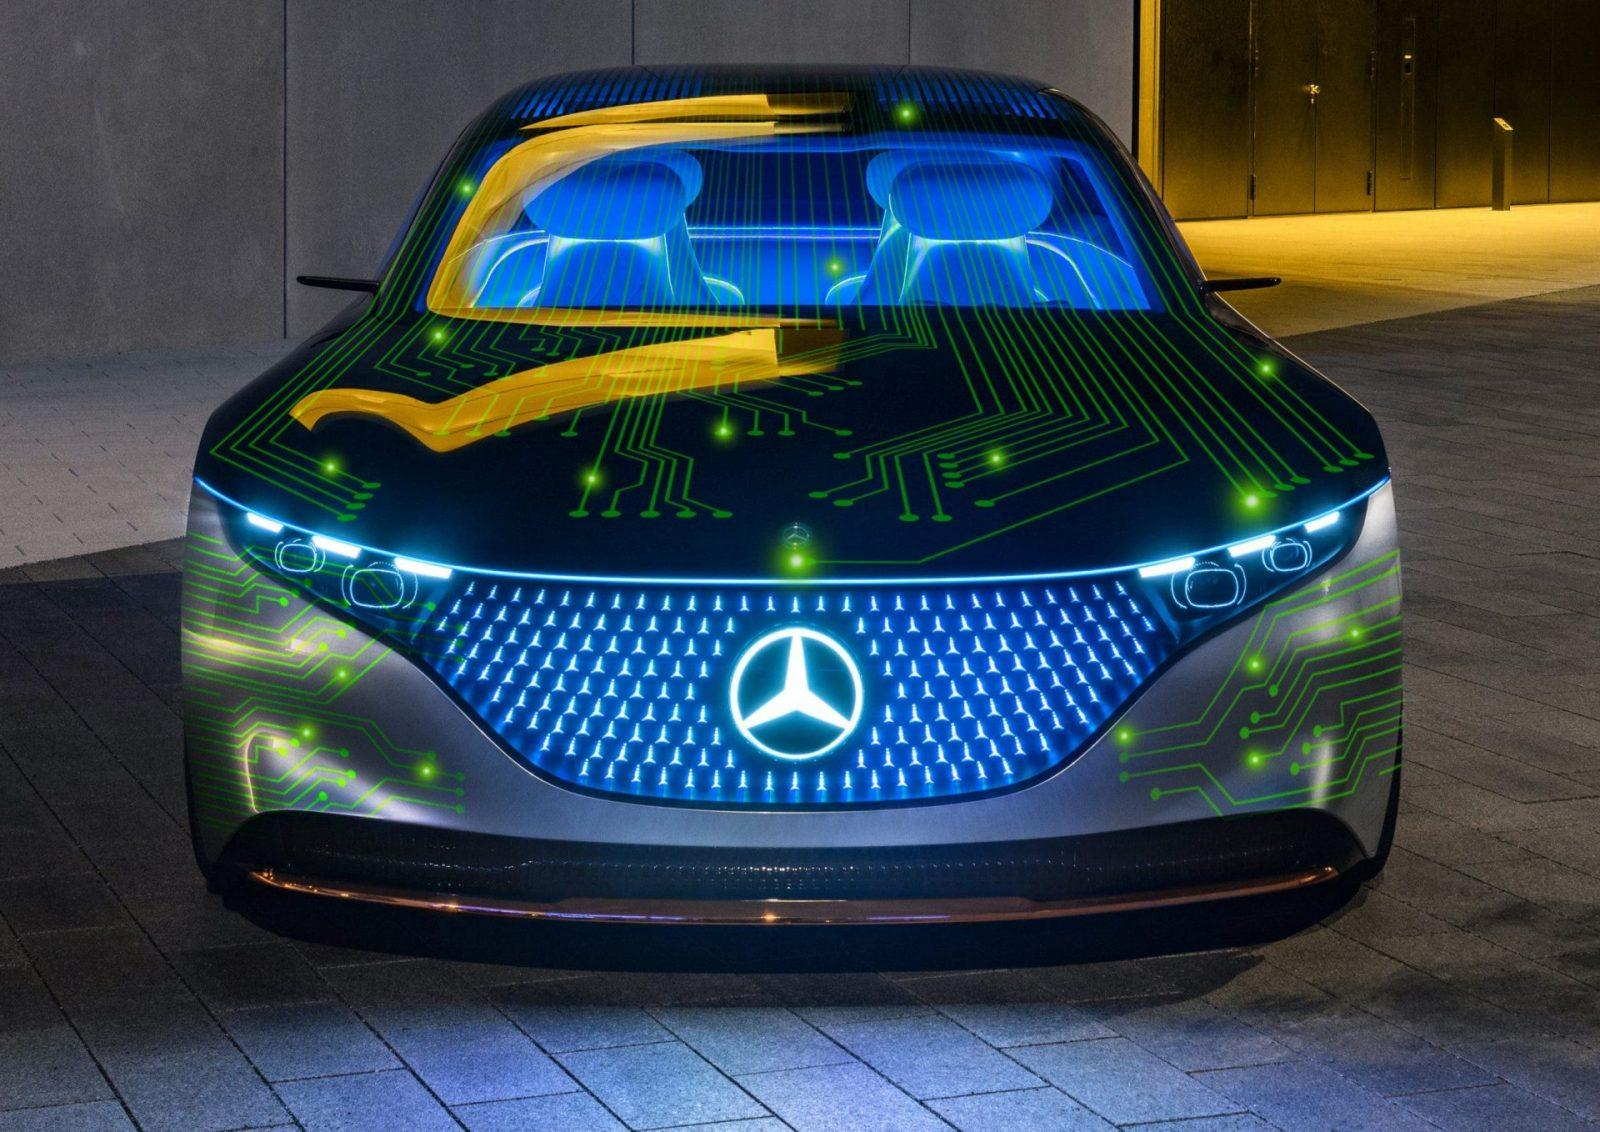 Mercedes-Benz & Nvidia Partner On Autonomous Driving — Numerous Thoughts & Questions